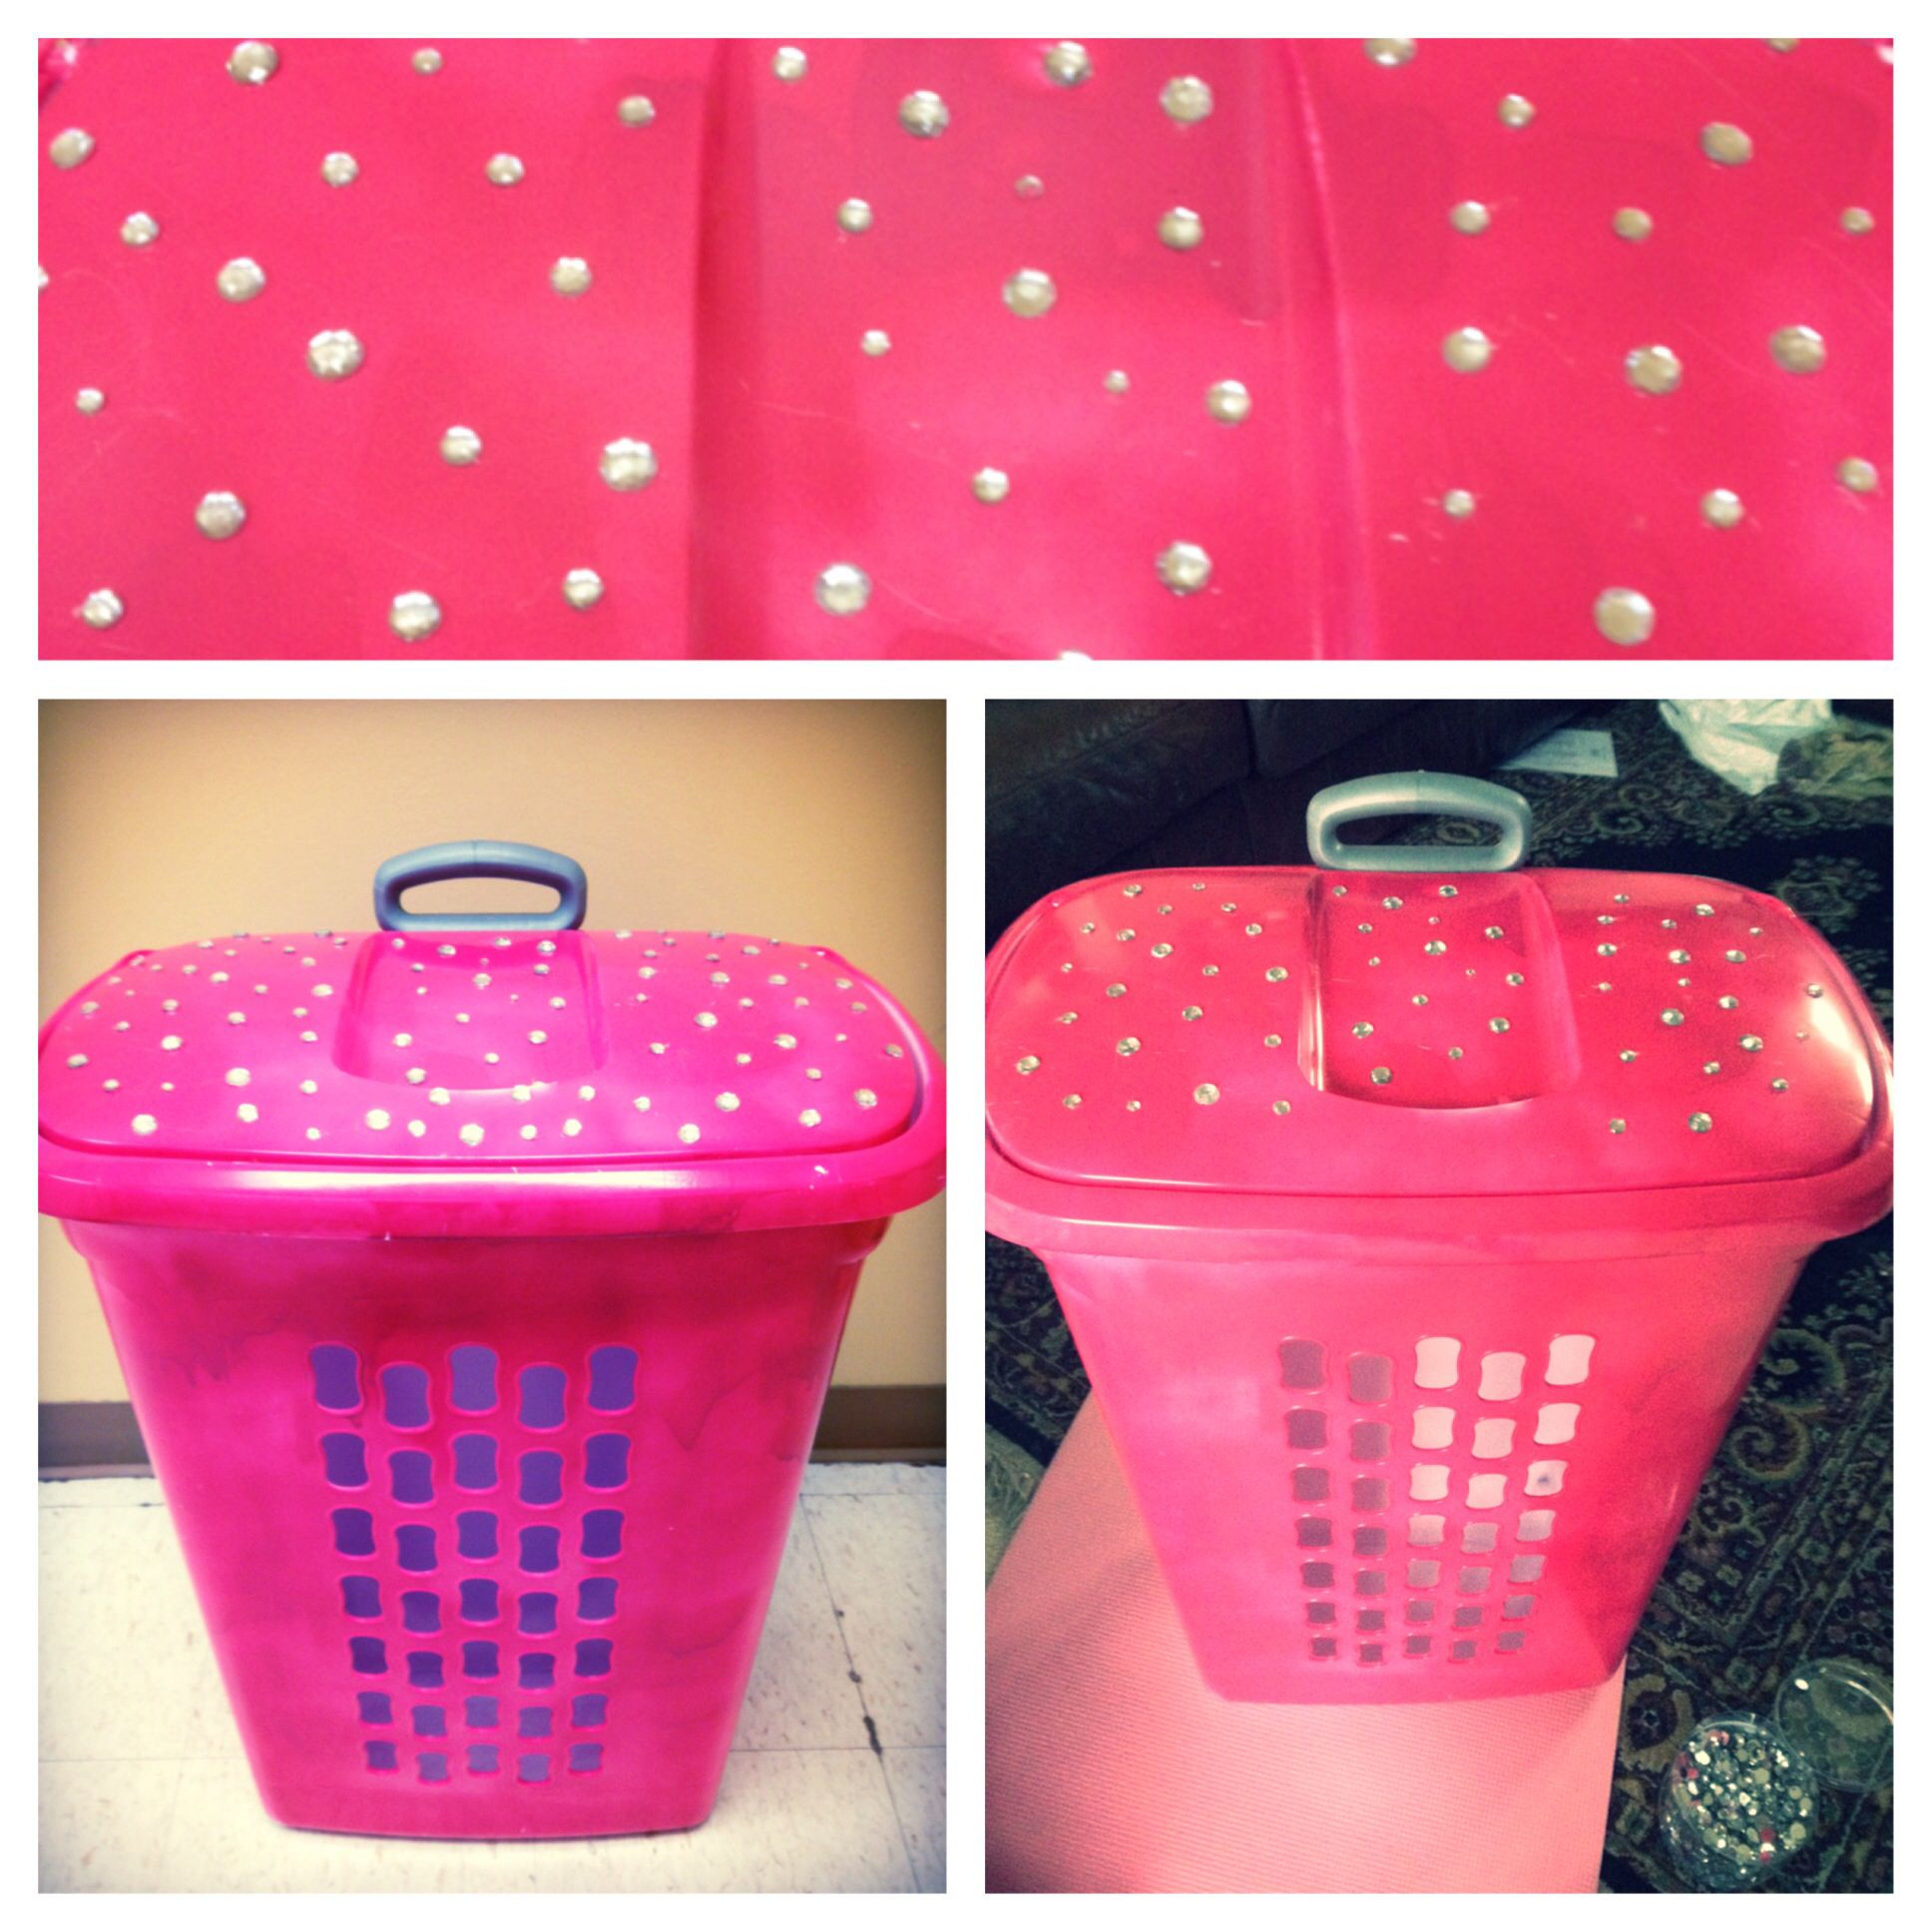 Diy Pink Laundry Basket Spray Painted Pink And Bedazzled With Gem